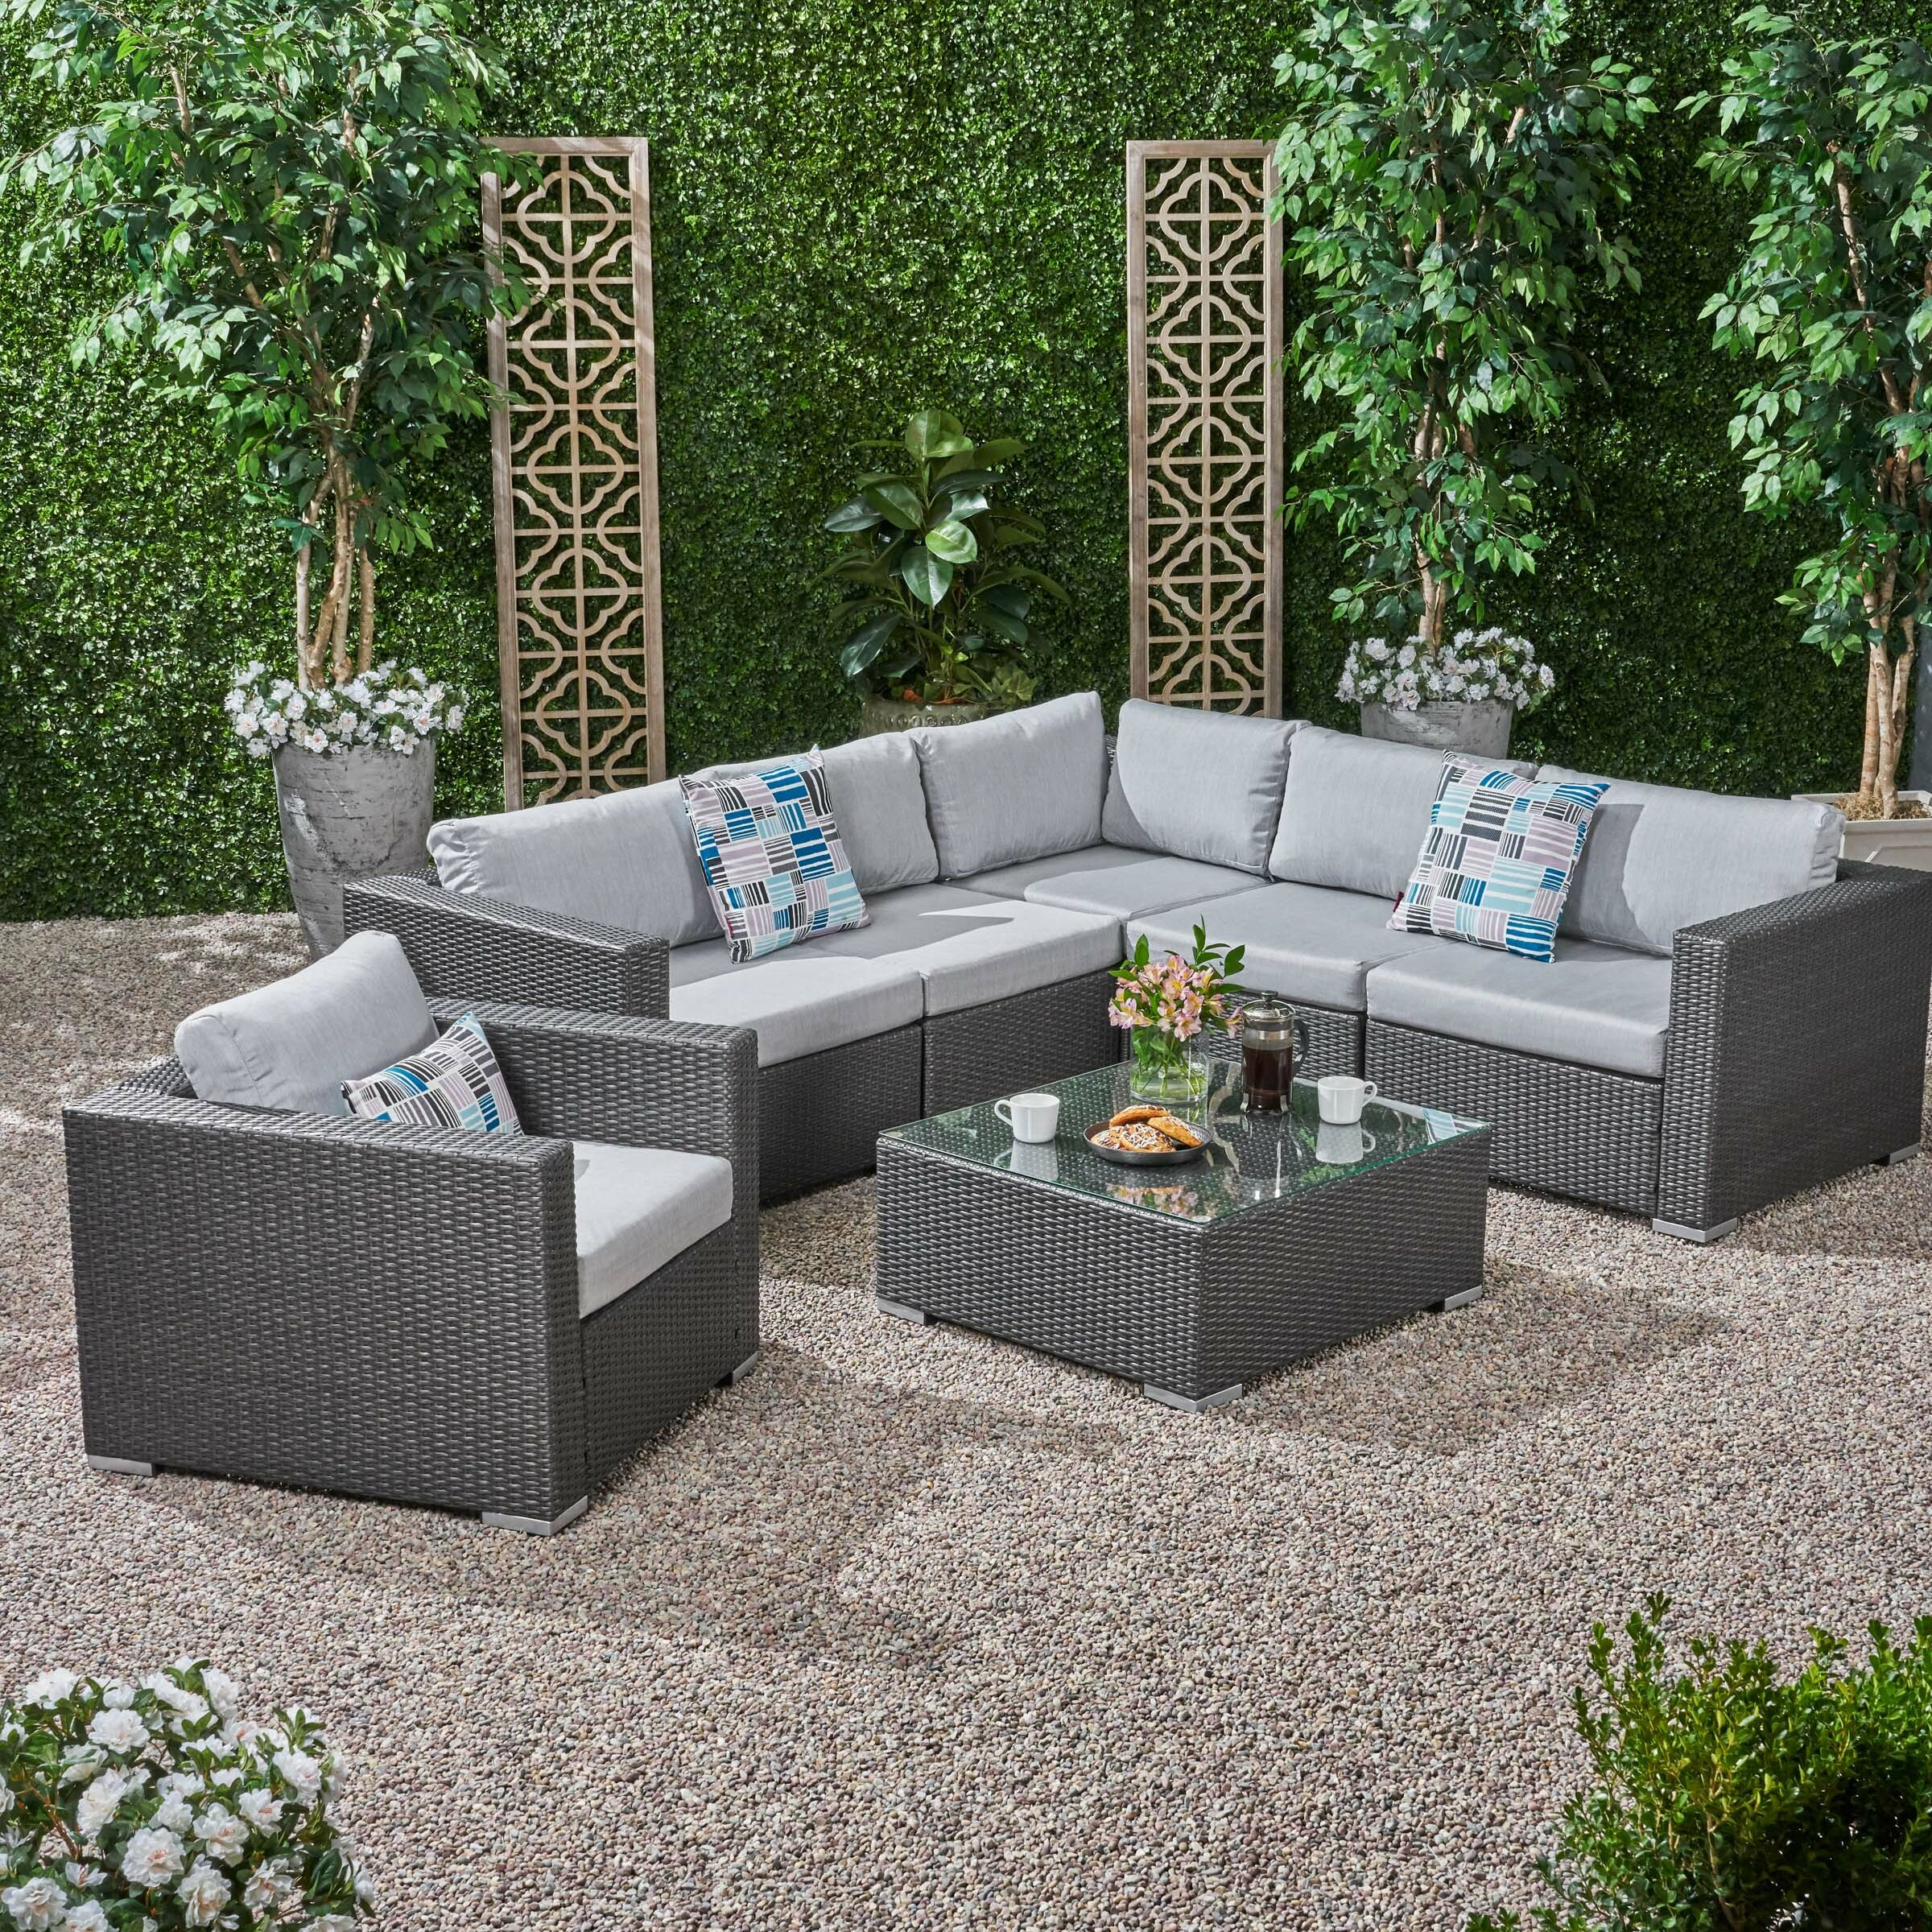 6 Seater Wicker Sectional Sofa Set